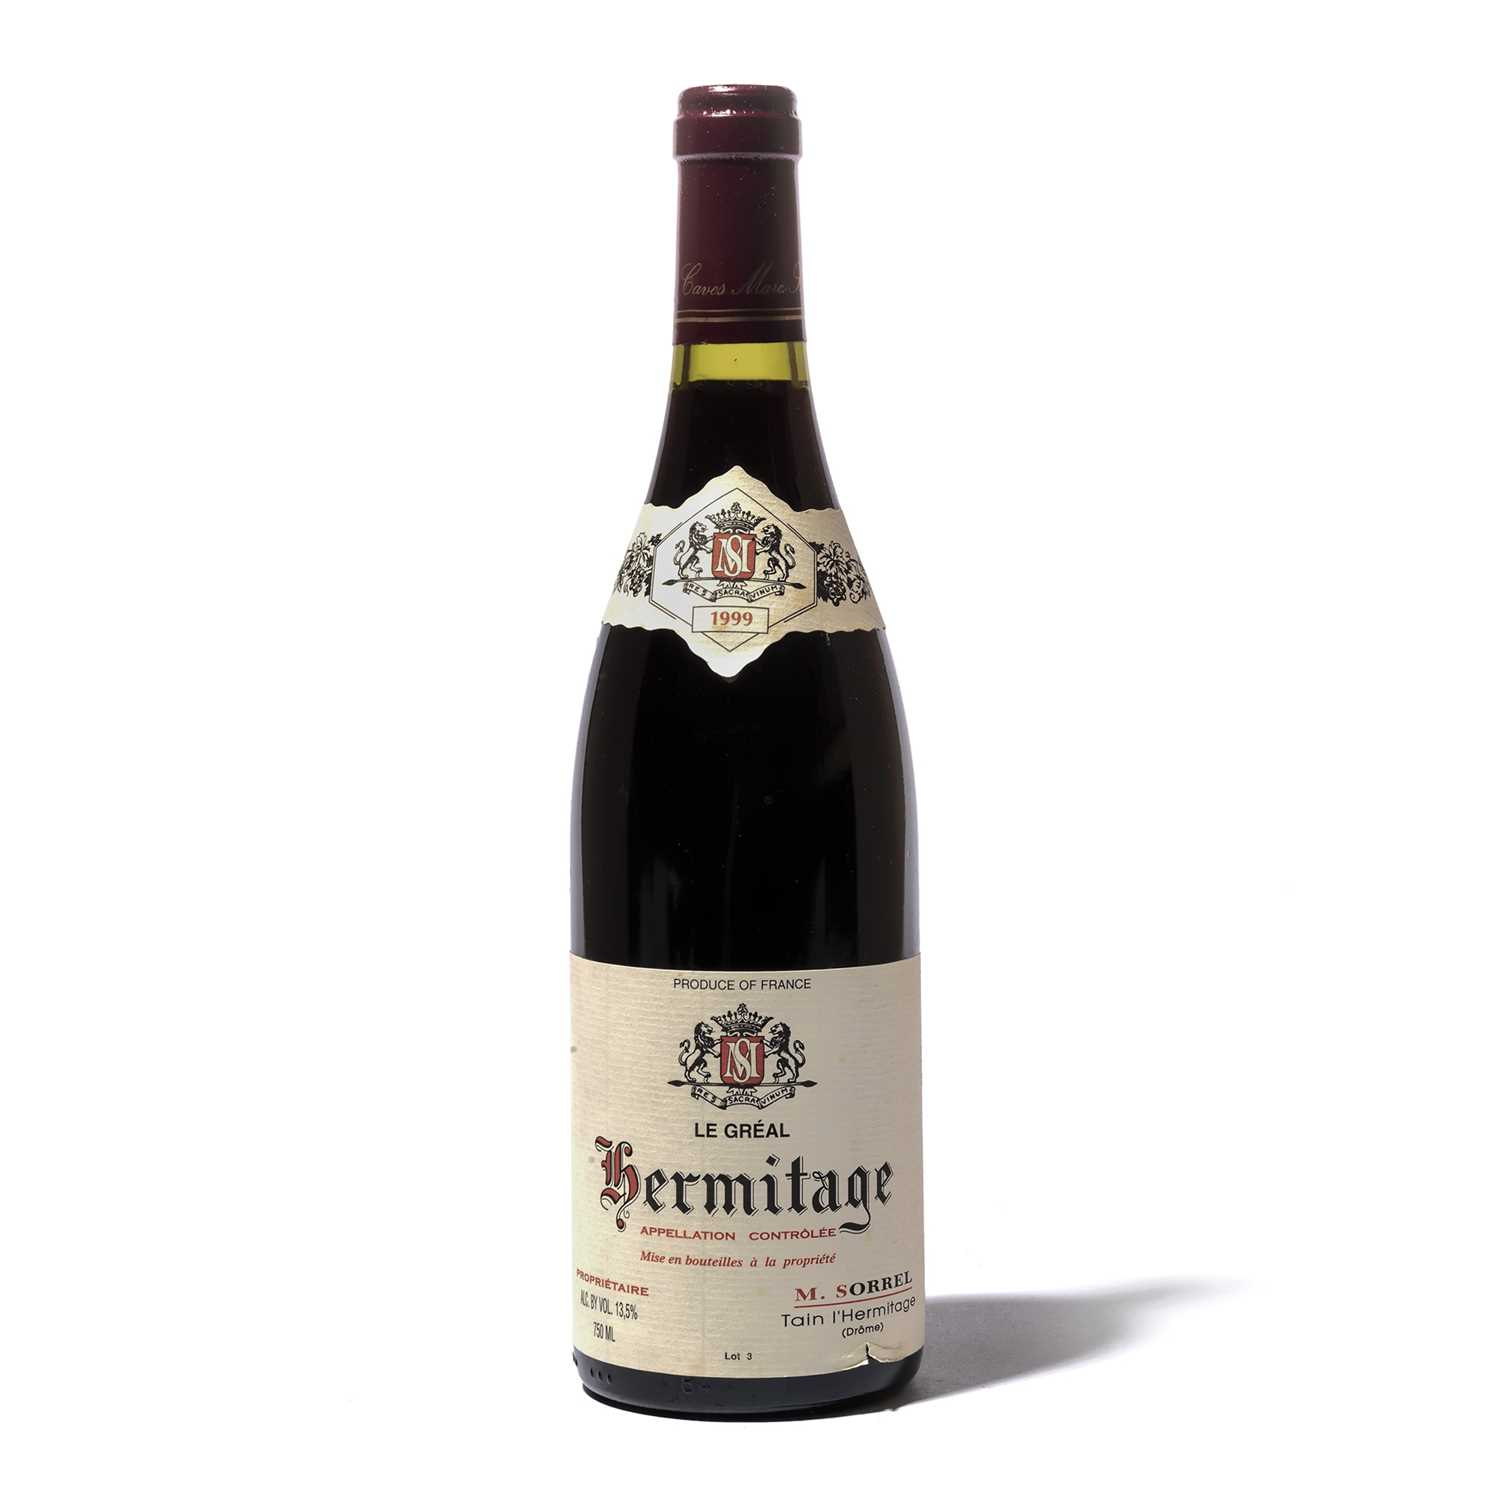 Lot 96 - 4 bottles 1999 Hermitage Le Greal M Sorrel